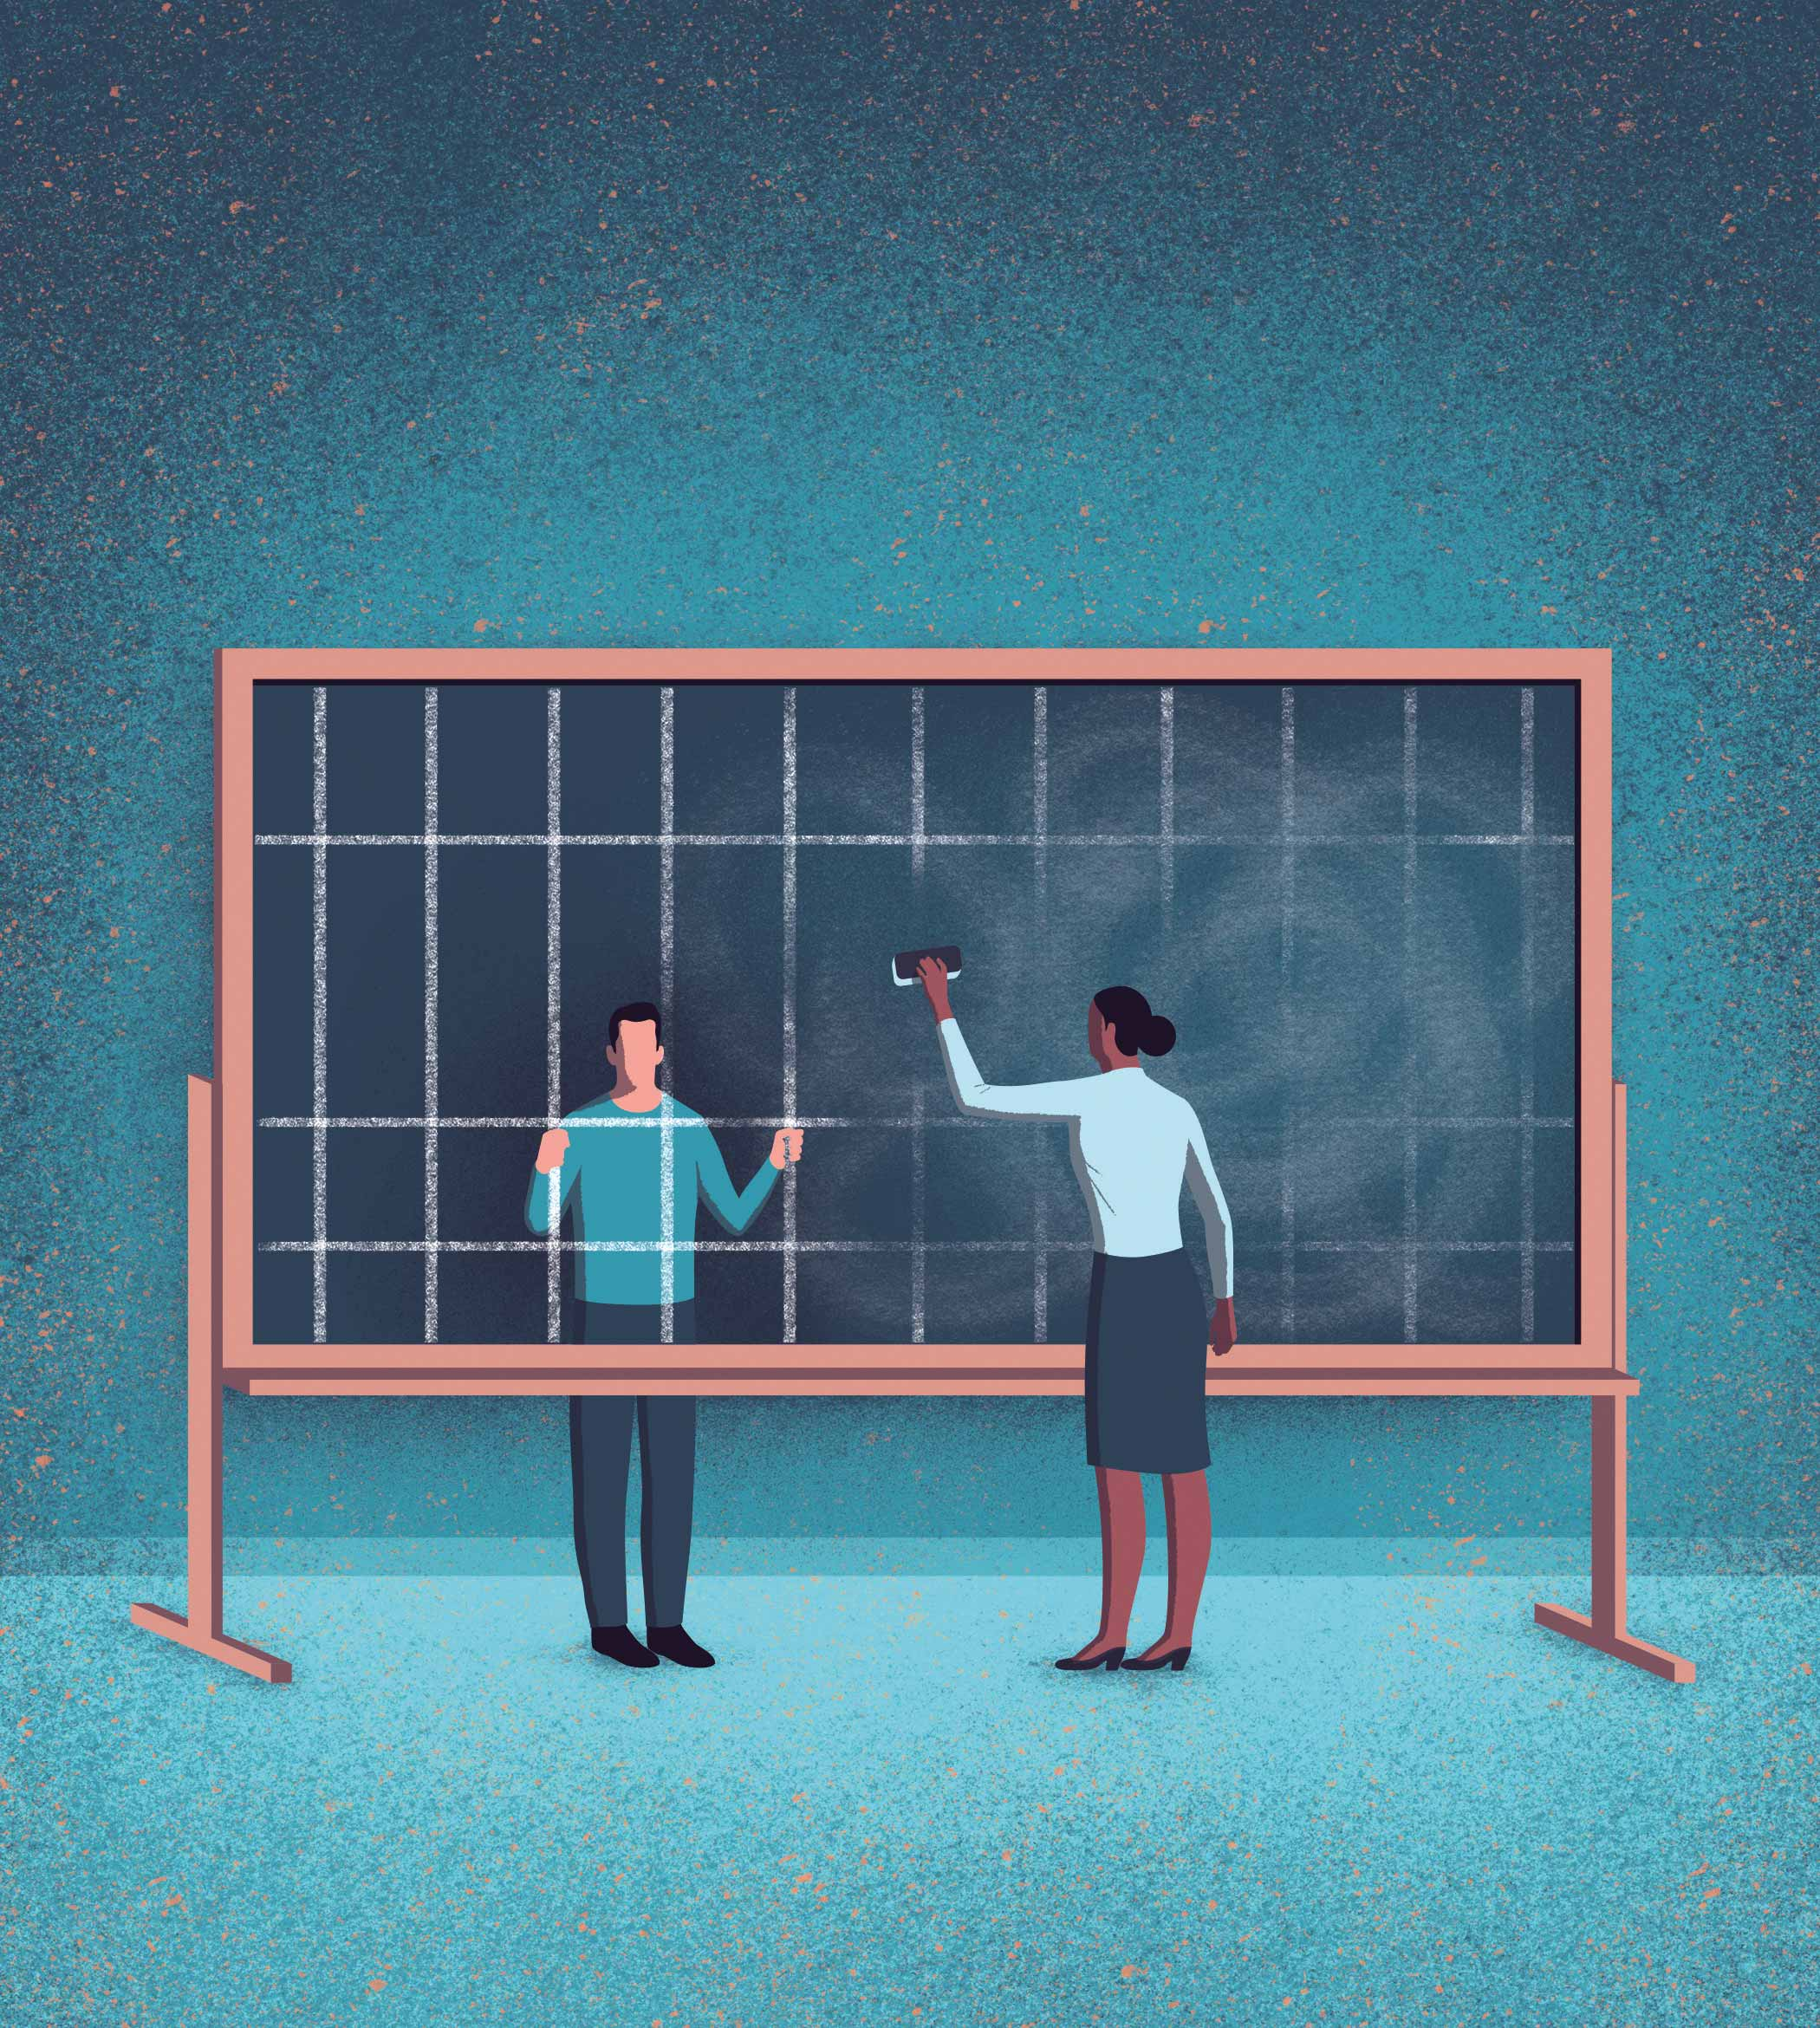 An illustration of a blackboard displaying chalk etchings of jail bars. A man behind the chalkboard peers through the bars, imprisoned, while a woman holding a chalkboard eraser removes the bars.